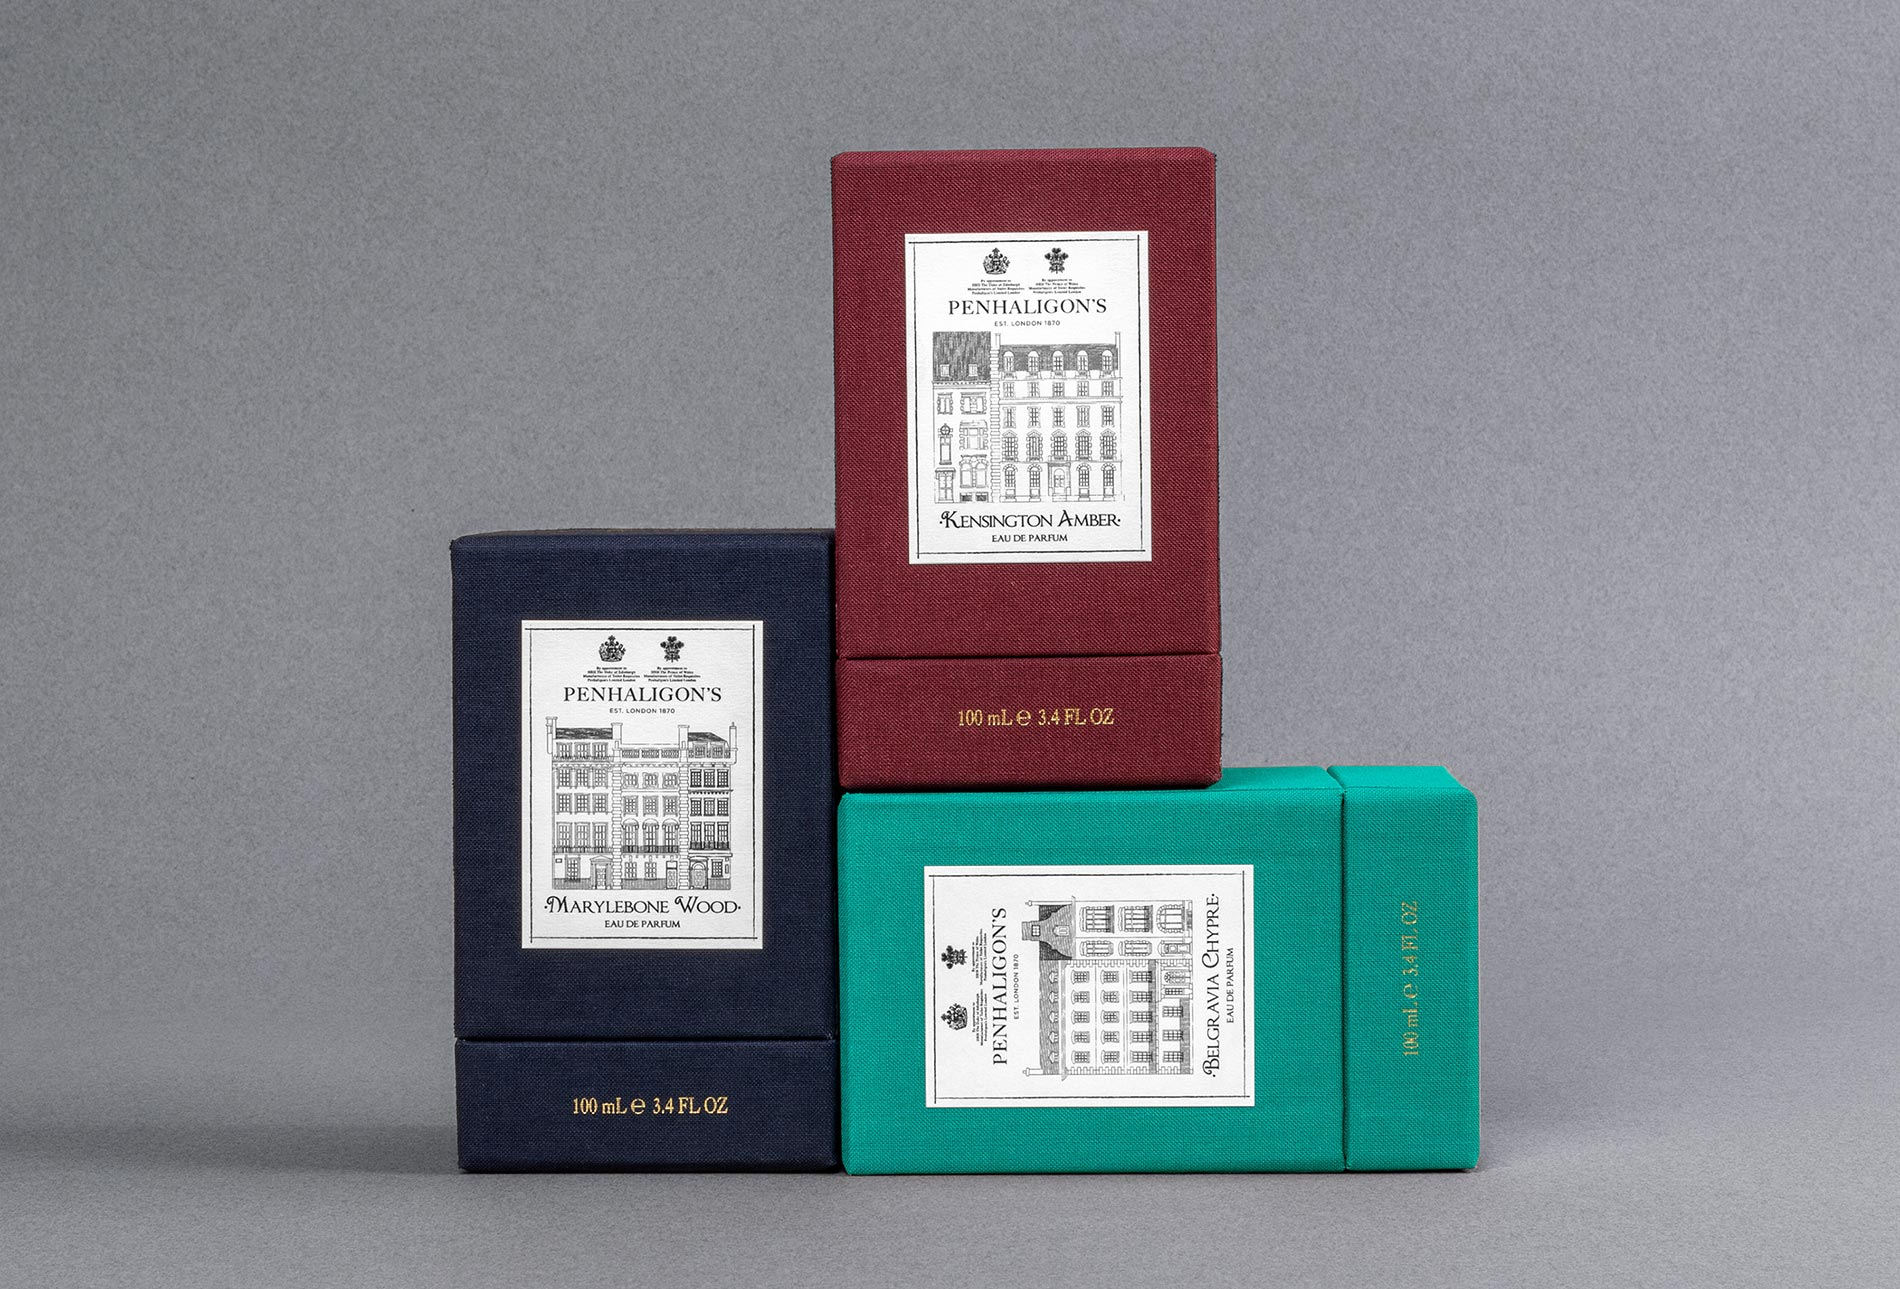 Penhaligon's Packaging Design